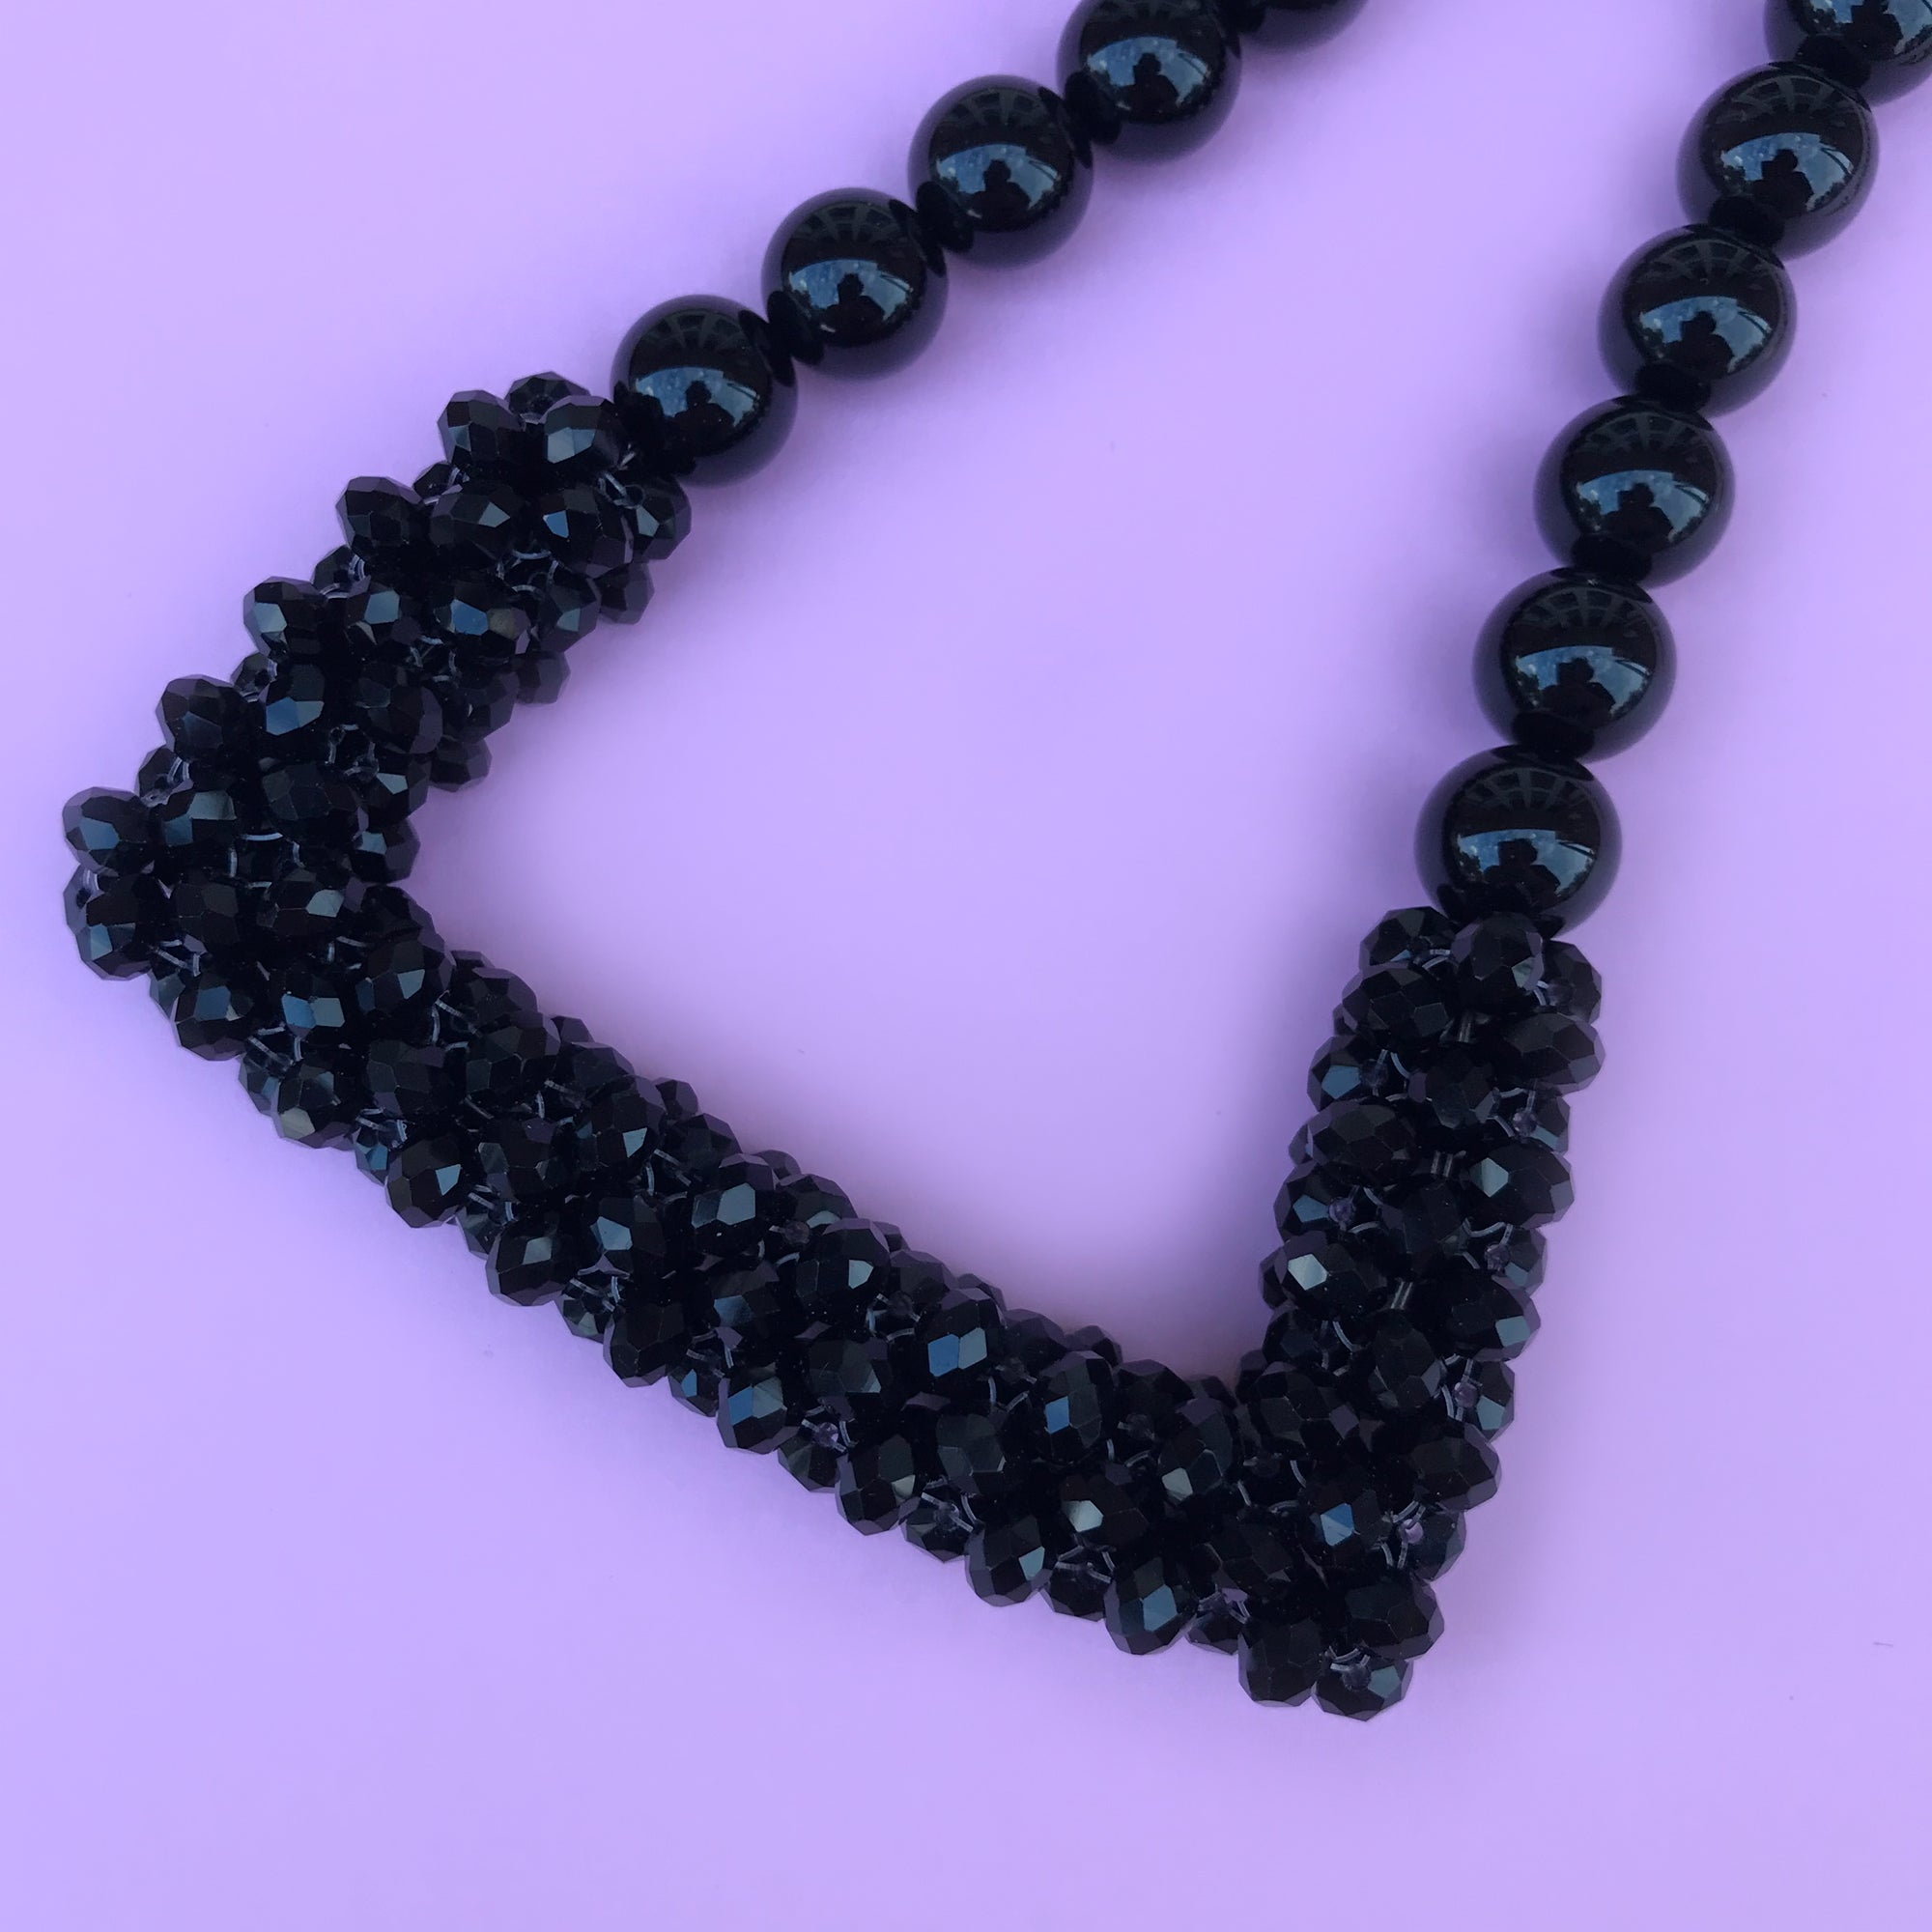 YARRA necklace - 70% OFF